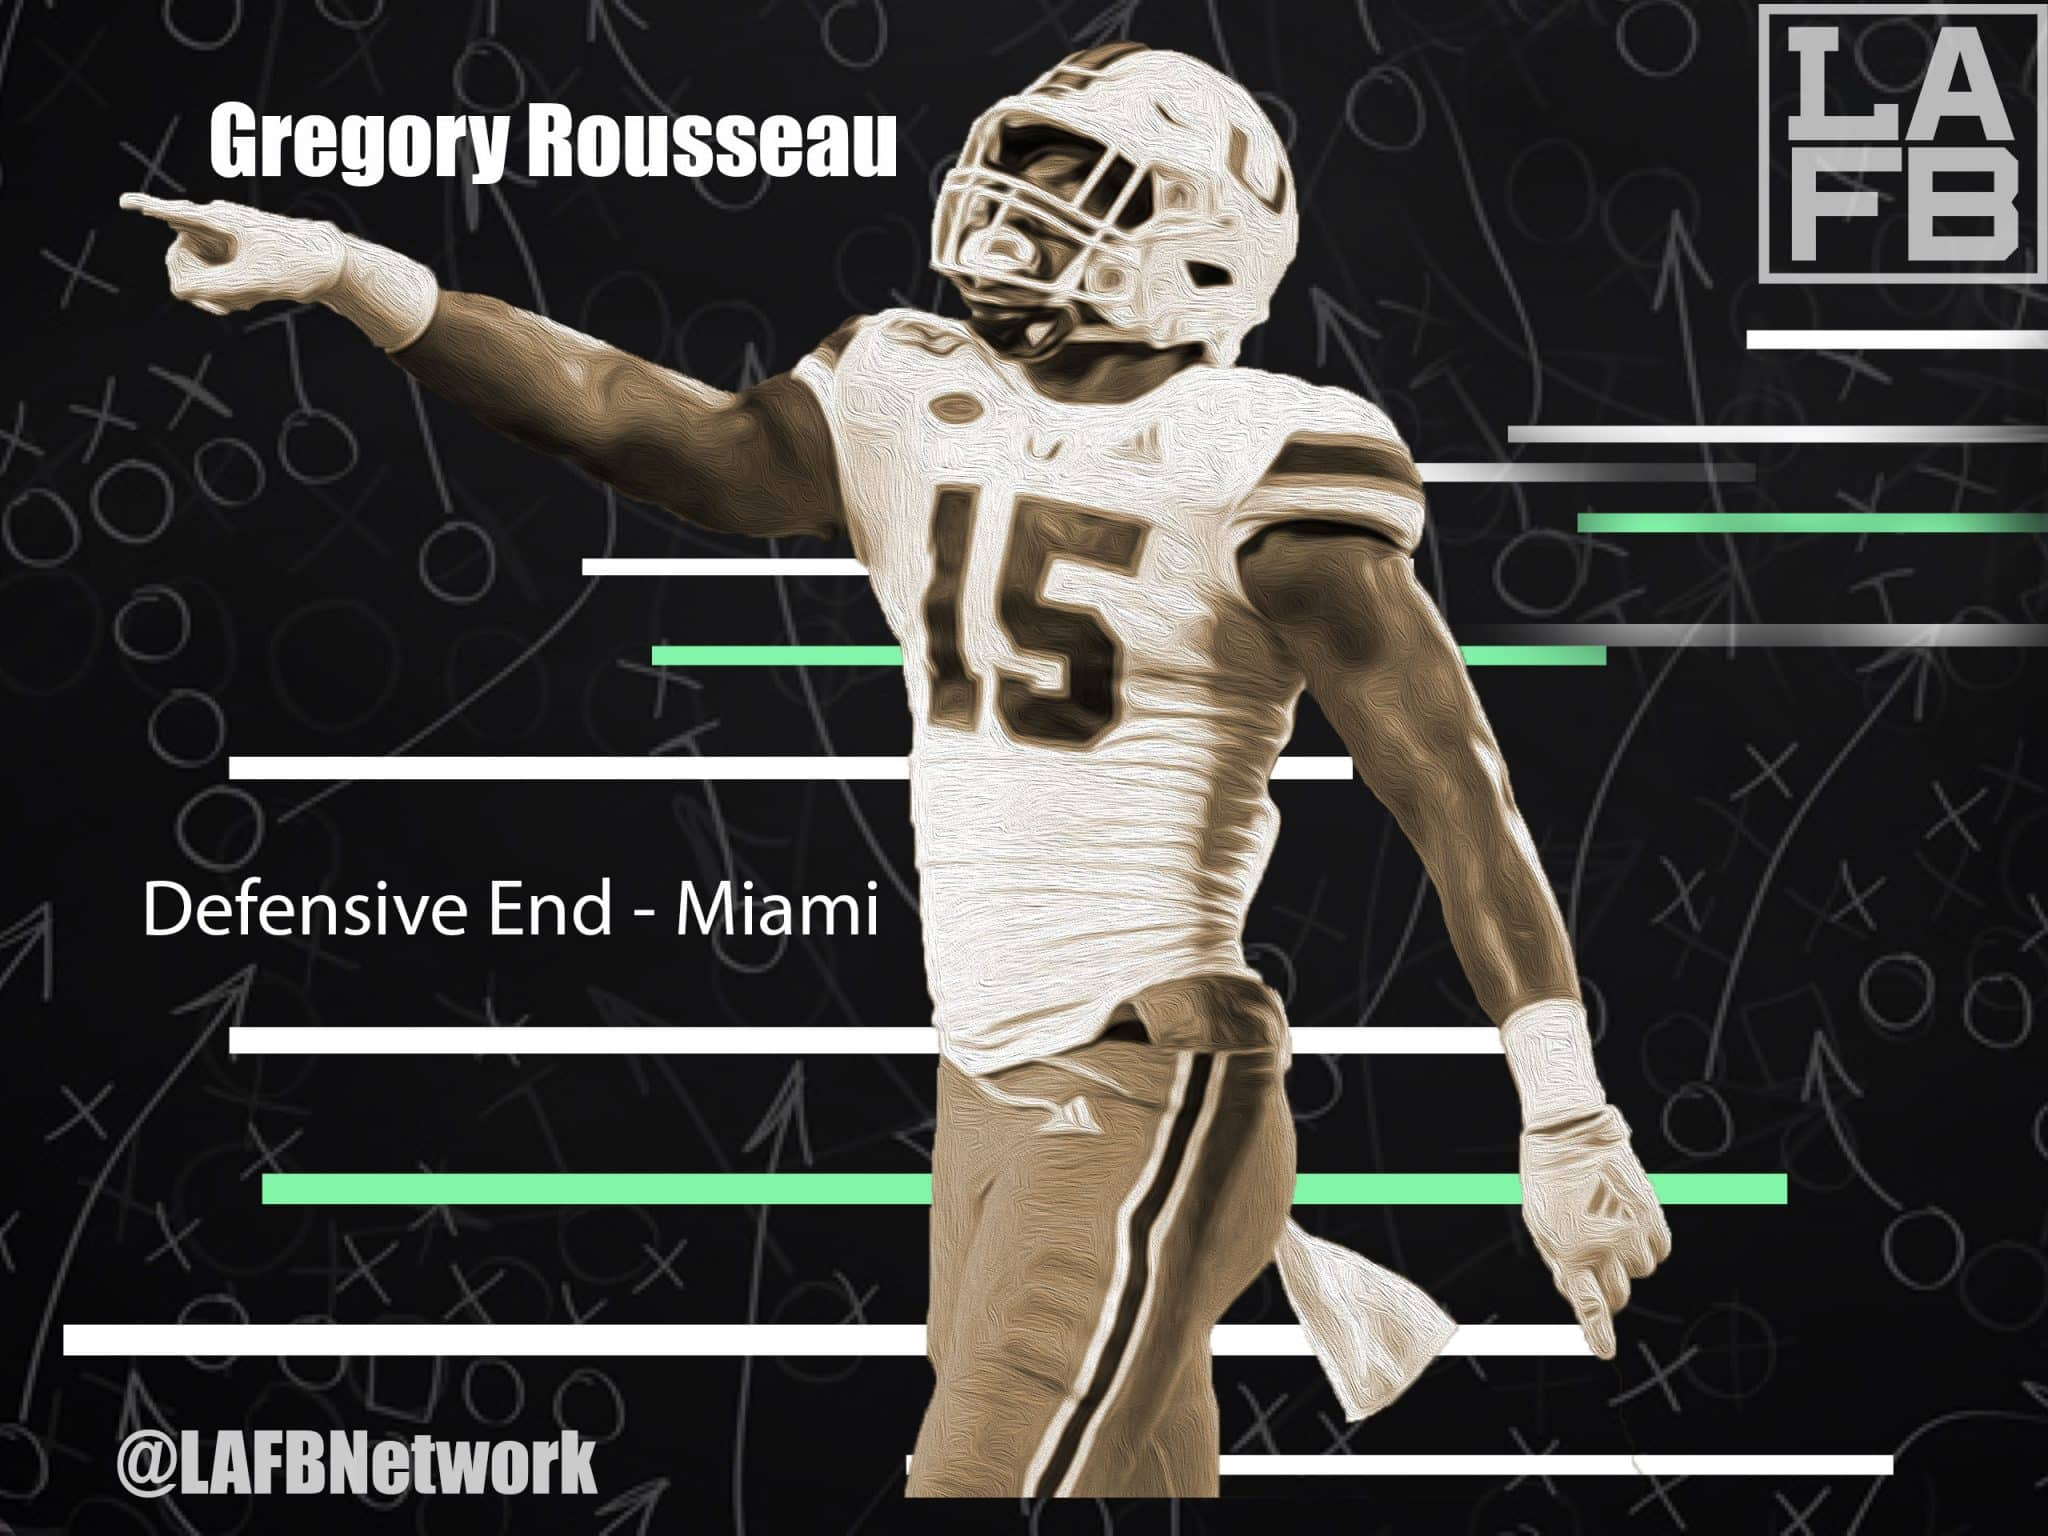 Gregory Rousseau NFL Draft Profile